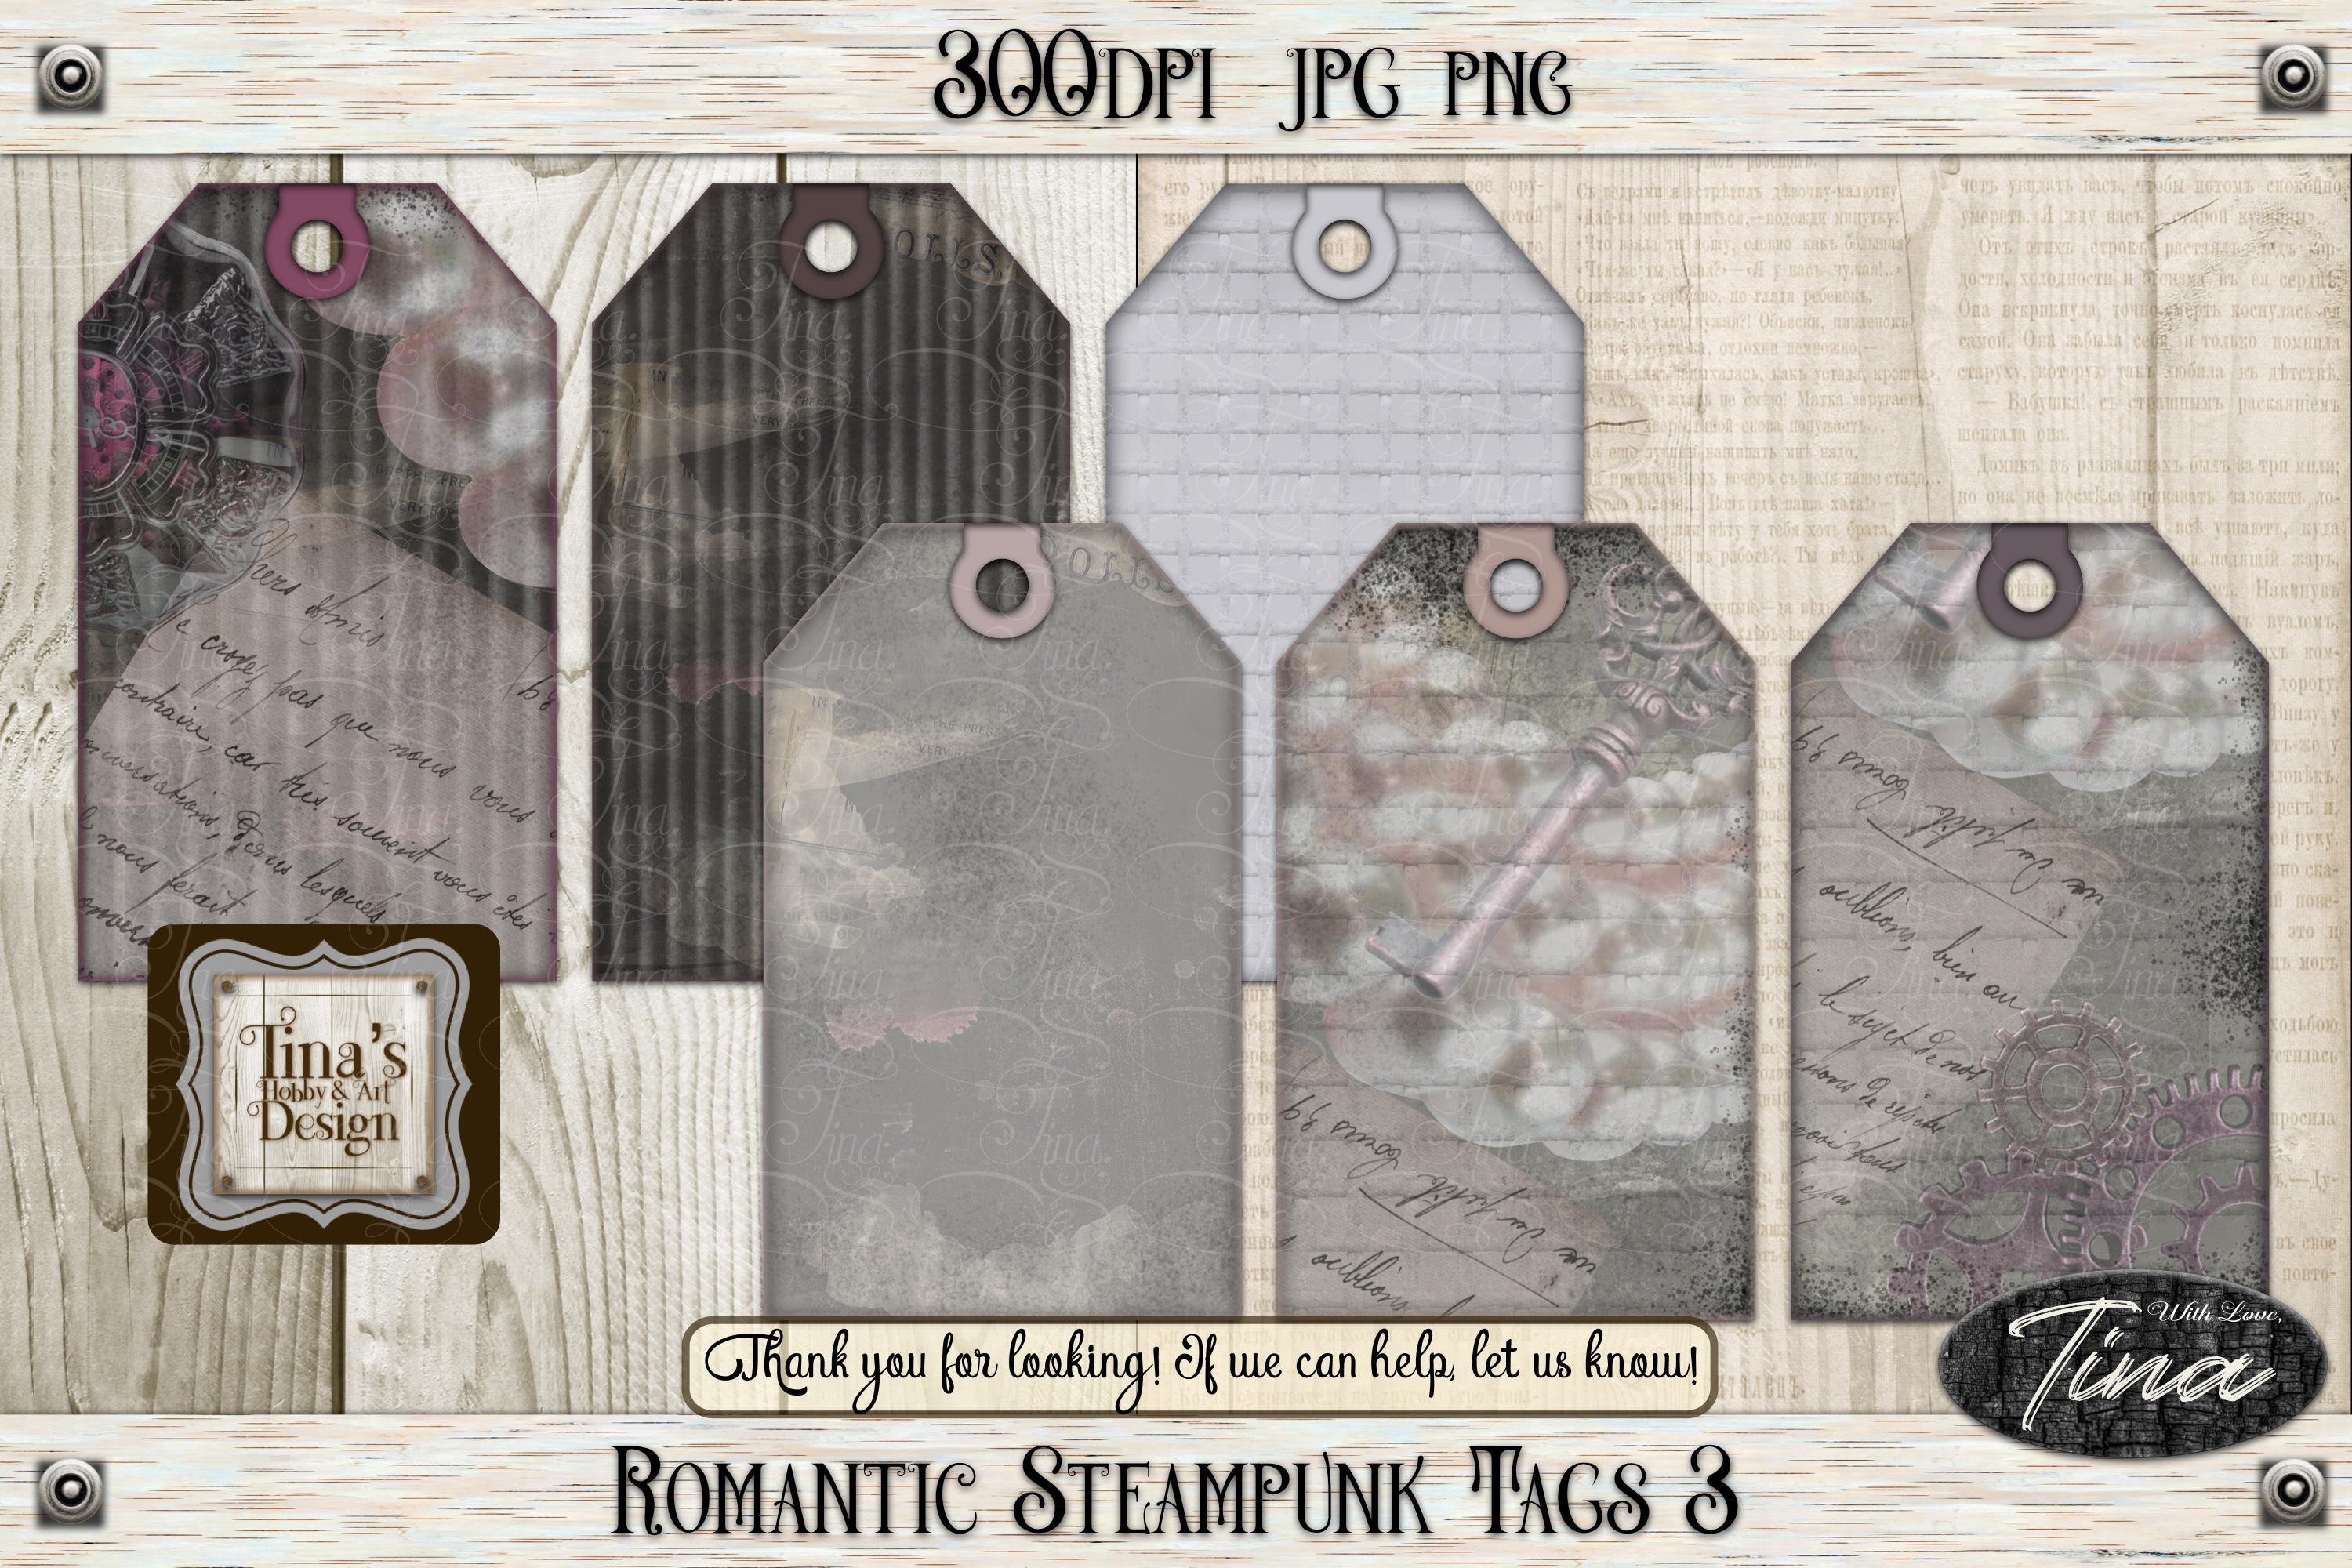 Romantic Steampunk 8.5x11 Collage Mauve Grunge 101918RS8 example image 9